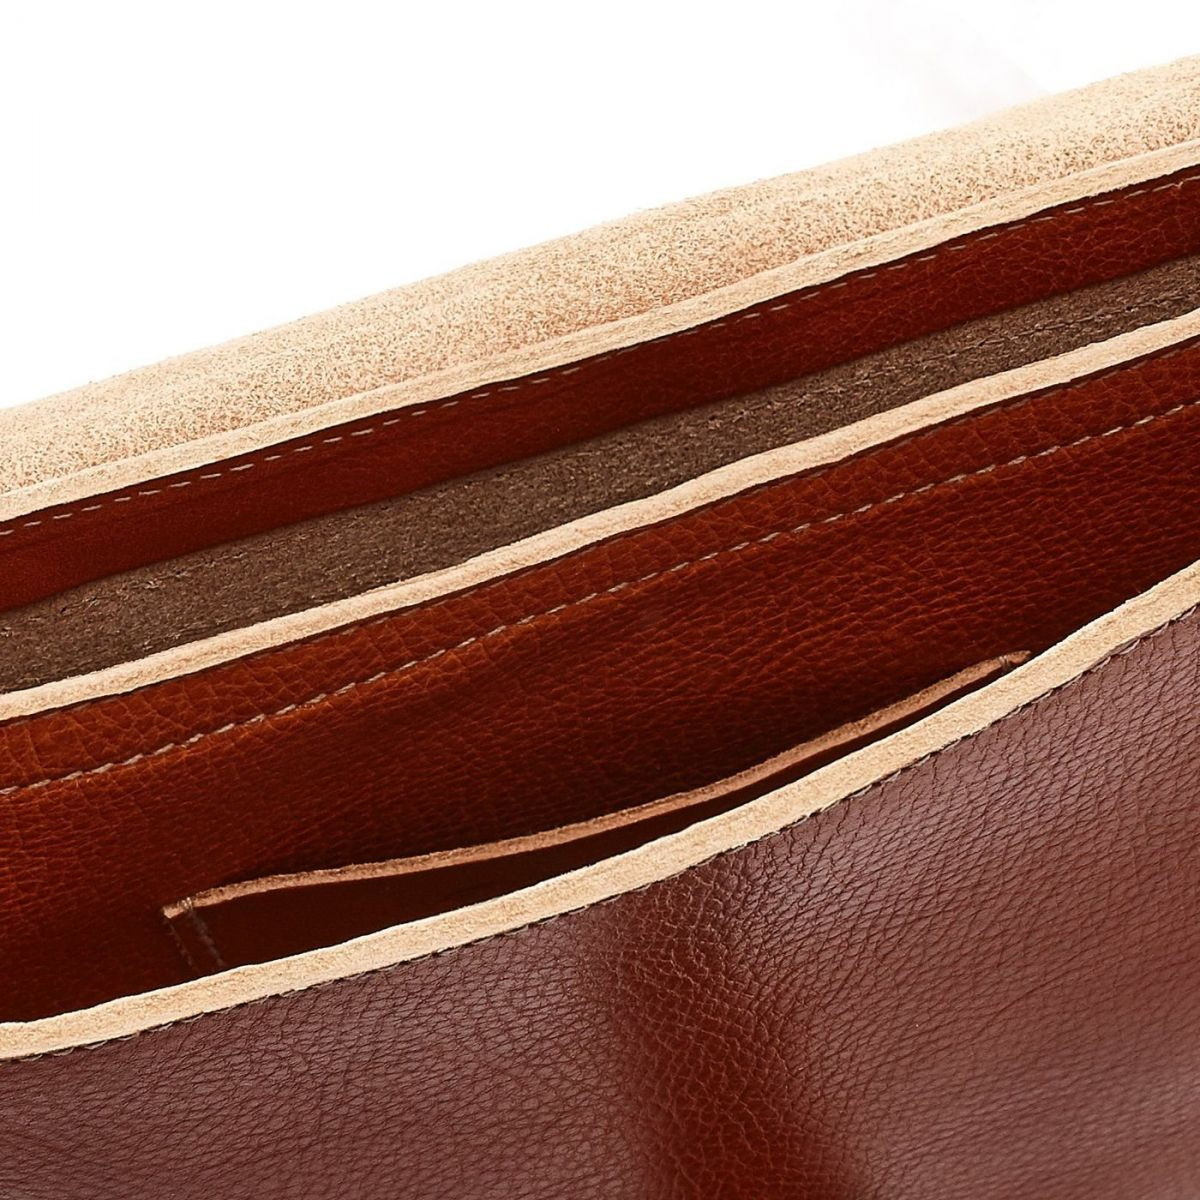 Women's Crossbody Bag in Cowhide Double Leather BCR027 color Caramel | Details